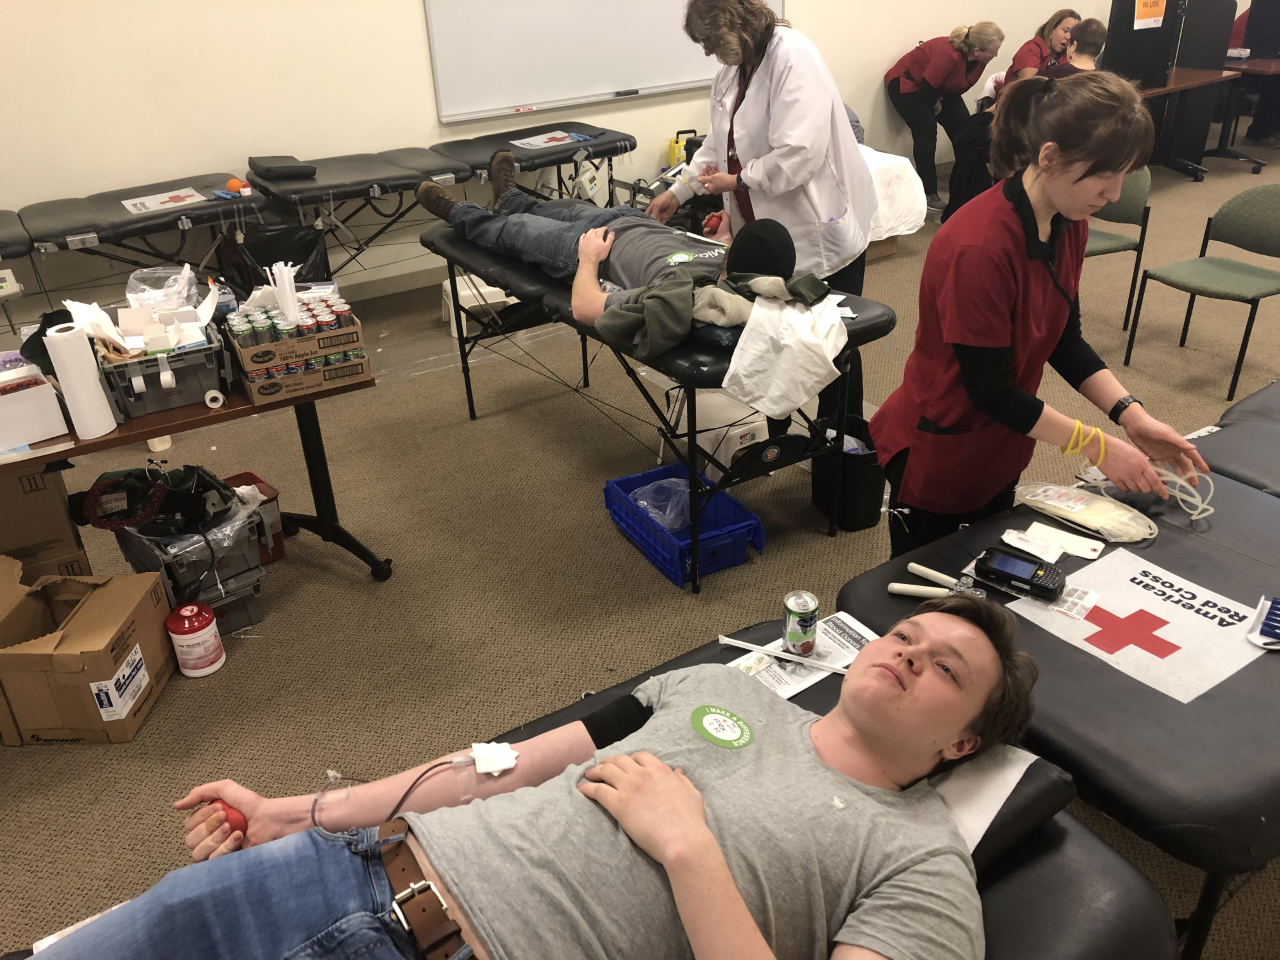 Quinnipiac students donating blood with registered American Red Cross nurses.